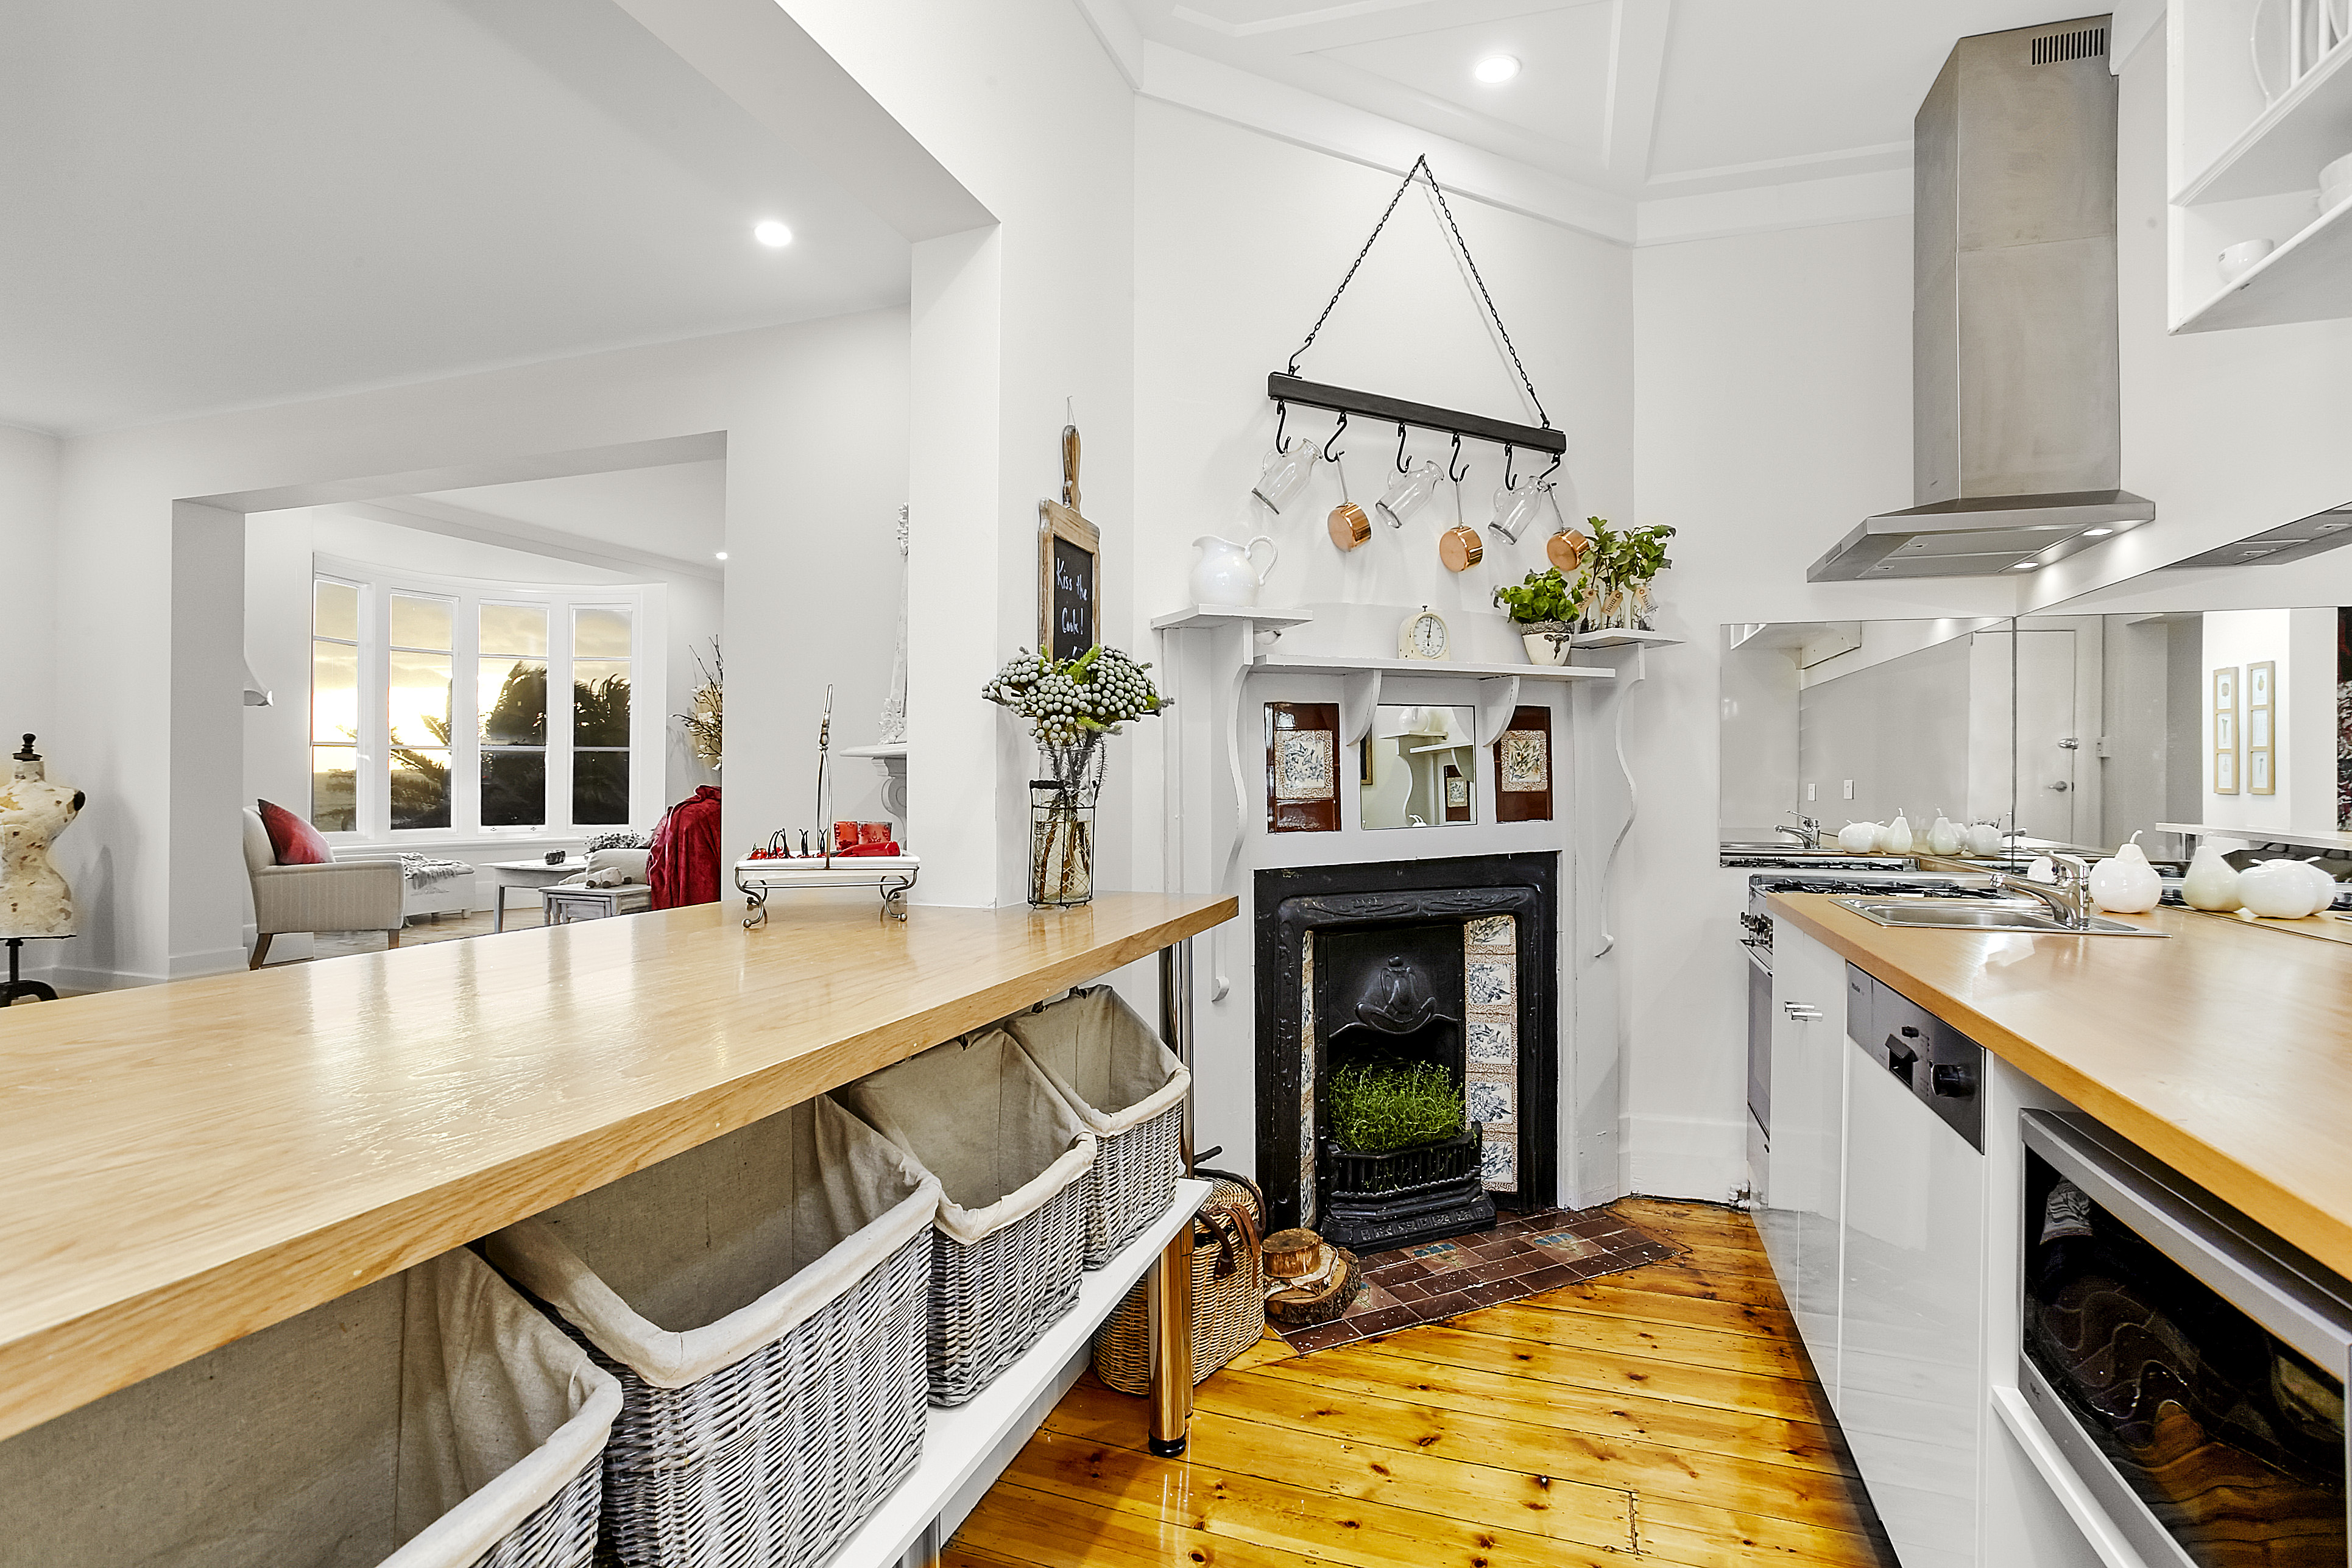 11-243-beaconsfield-parade-middle-park-student-accommodation-Melbourne-Kitchen-Area-Unilodgers